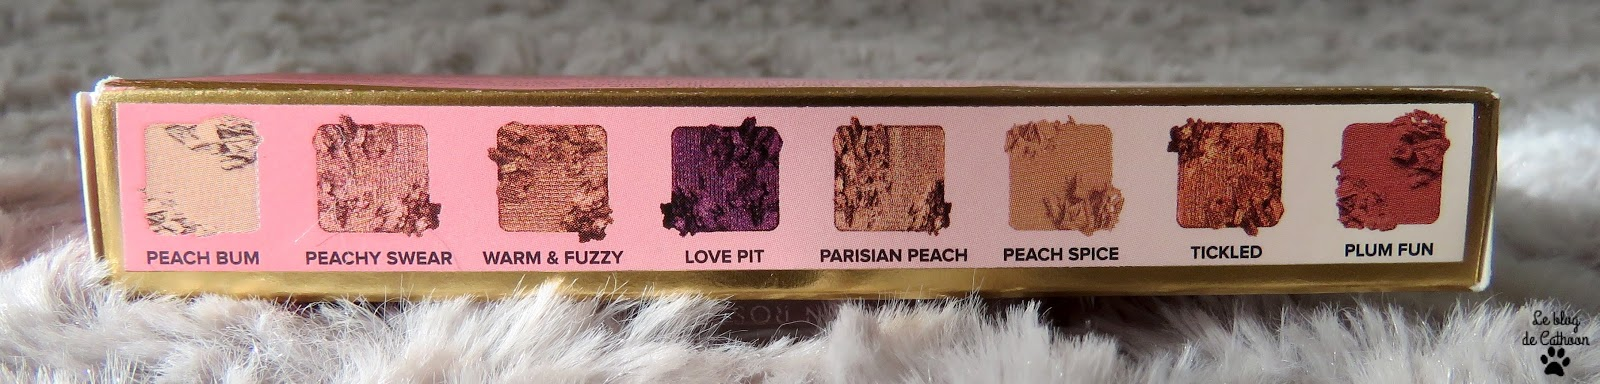 Tickled Peach - Too Faced